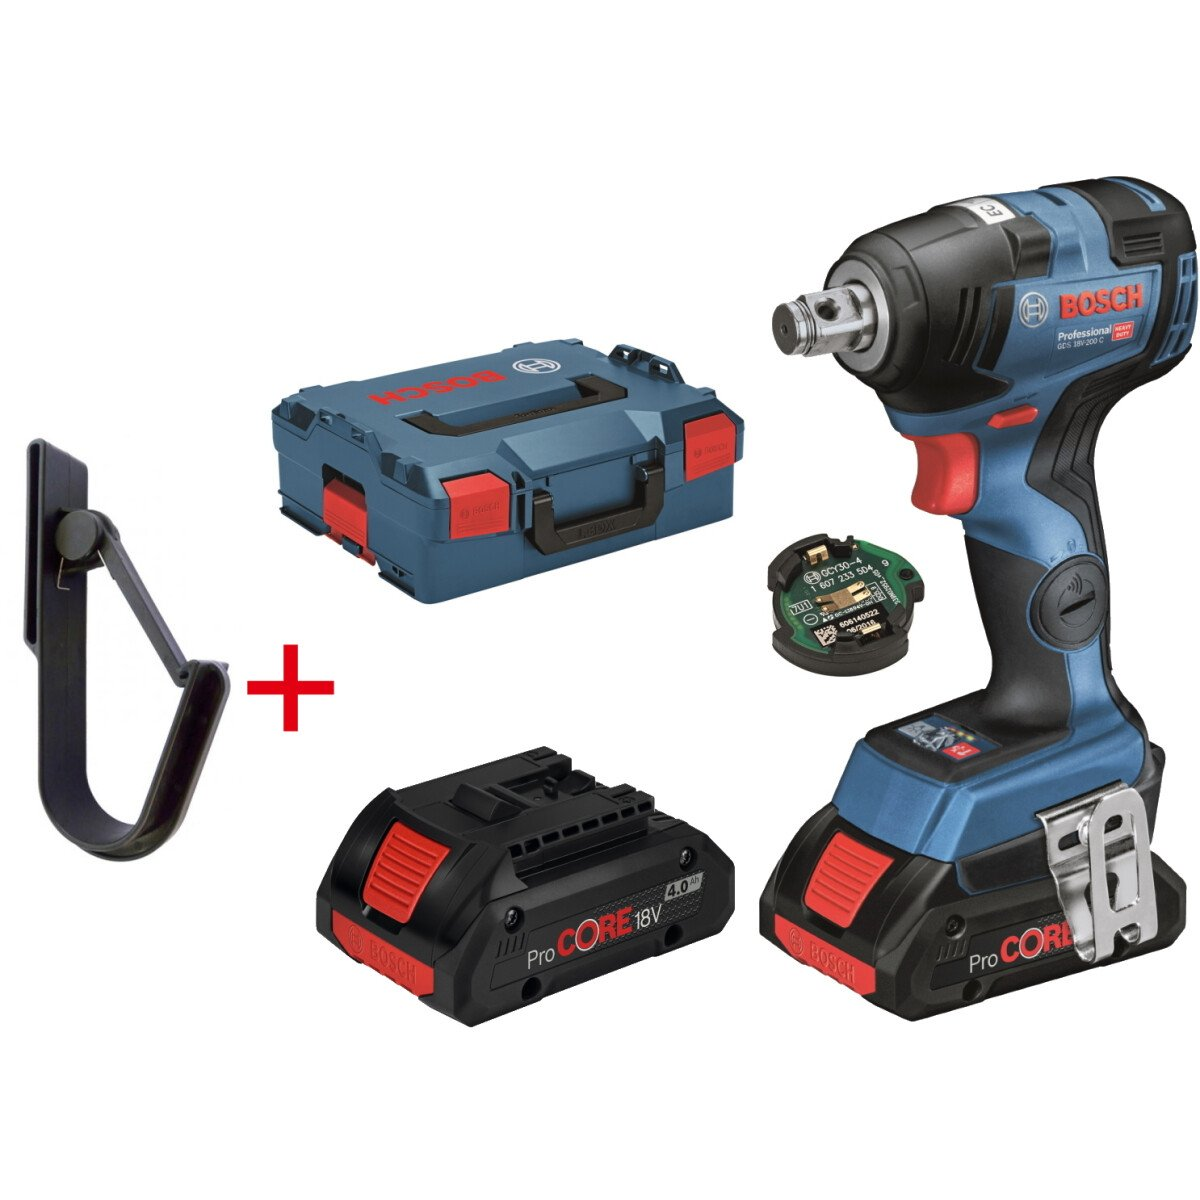 Bosch GDS 18 V-200 C + Gorilla Hook 18V Brushless Impact Wrench 2x4.0 Procore with Connectivity Module  in L-Boxx